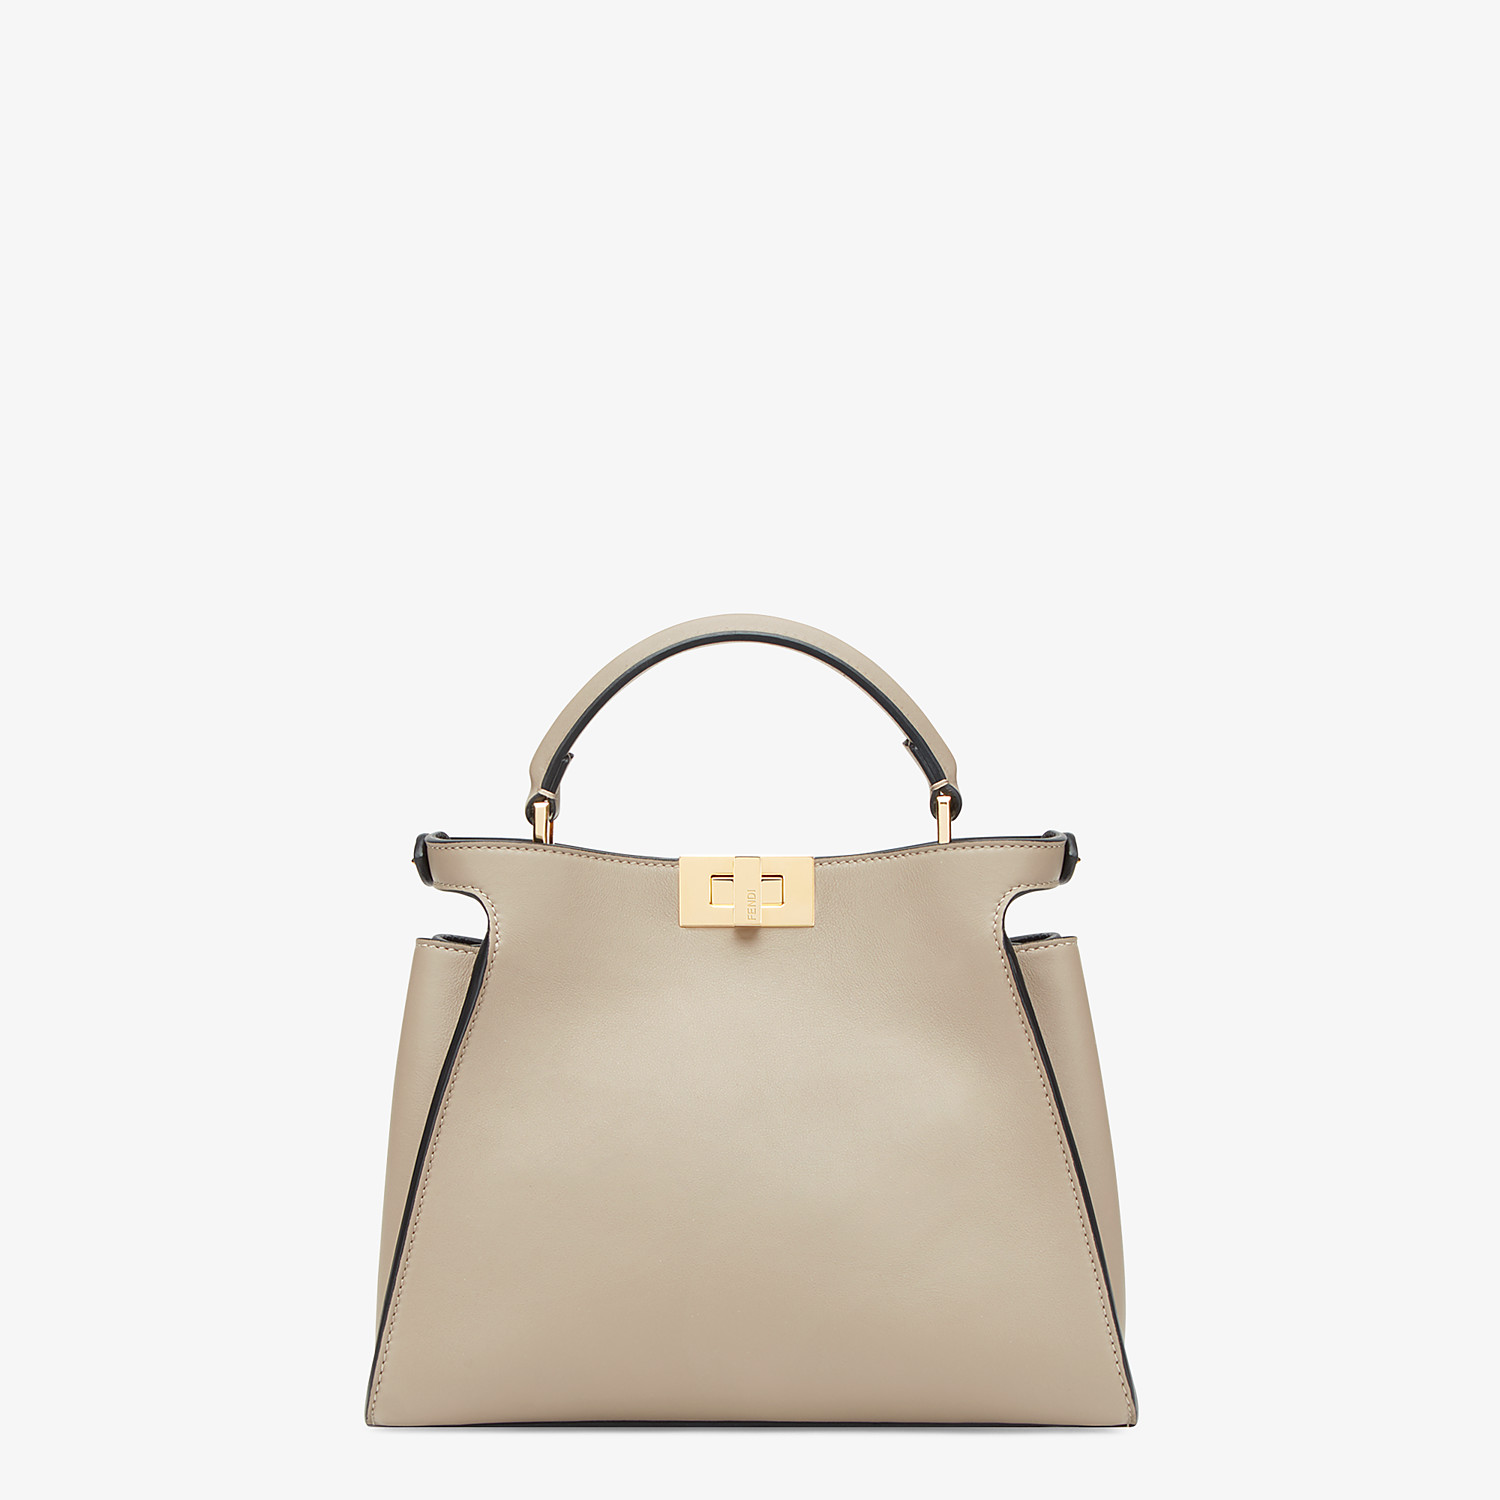 FENDI PEEKABOO ICONIC ESSENTIALLY - Dove gray leather bag - view 3 detail